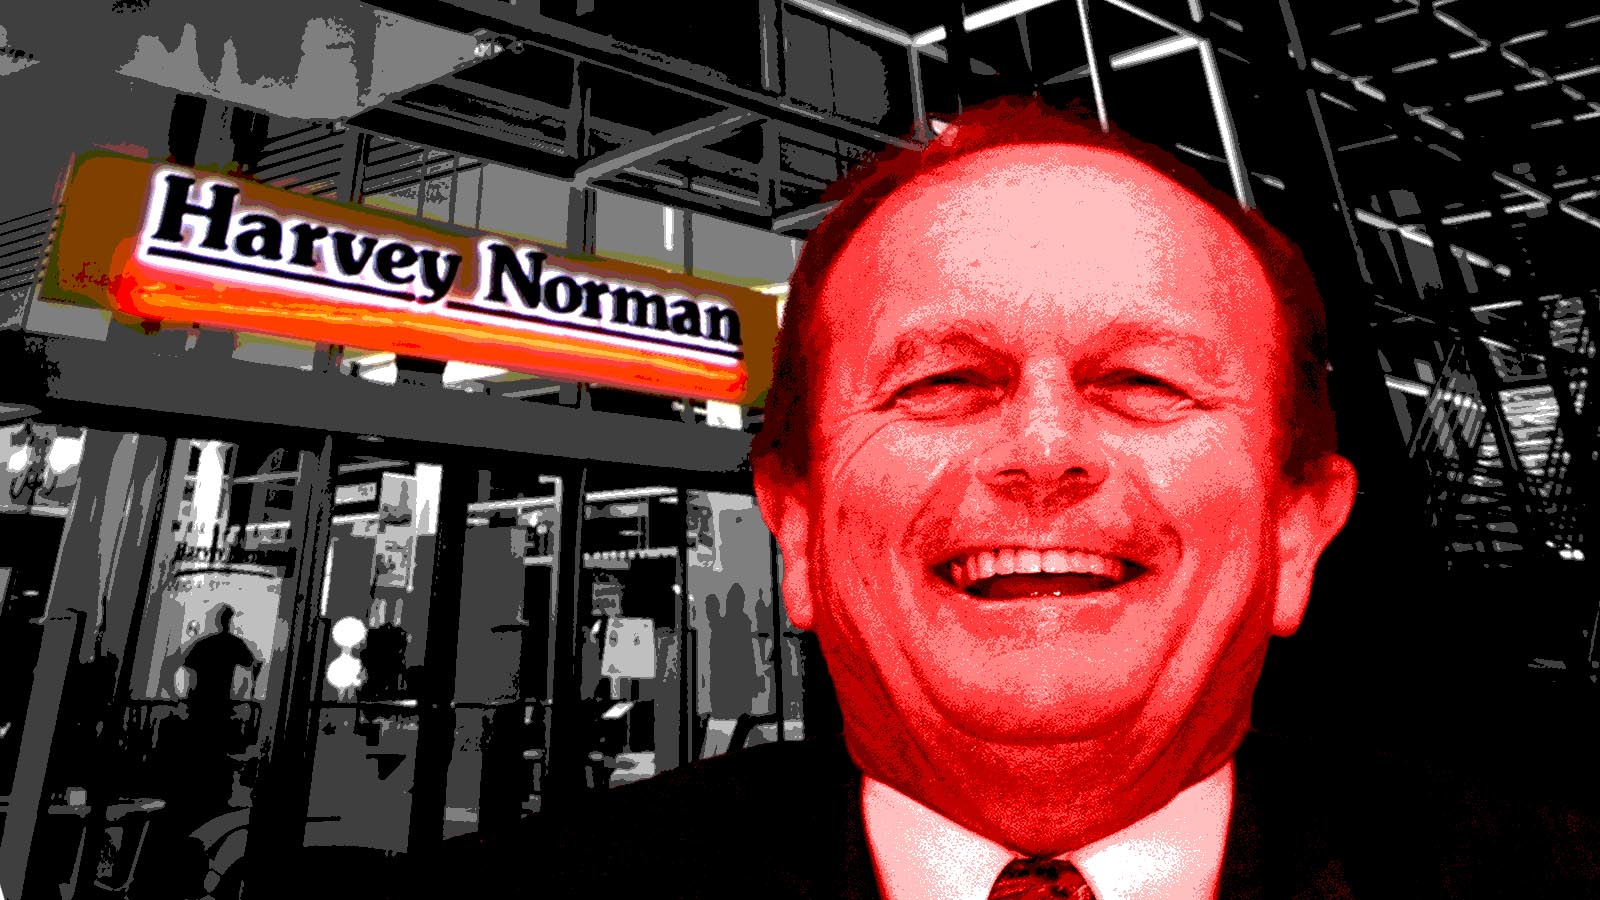 Gerry Harvey stands outside a Harvey Norman store